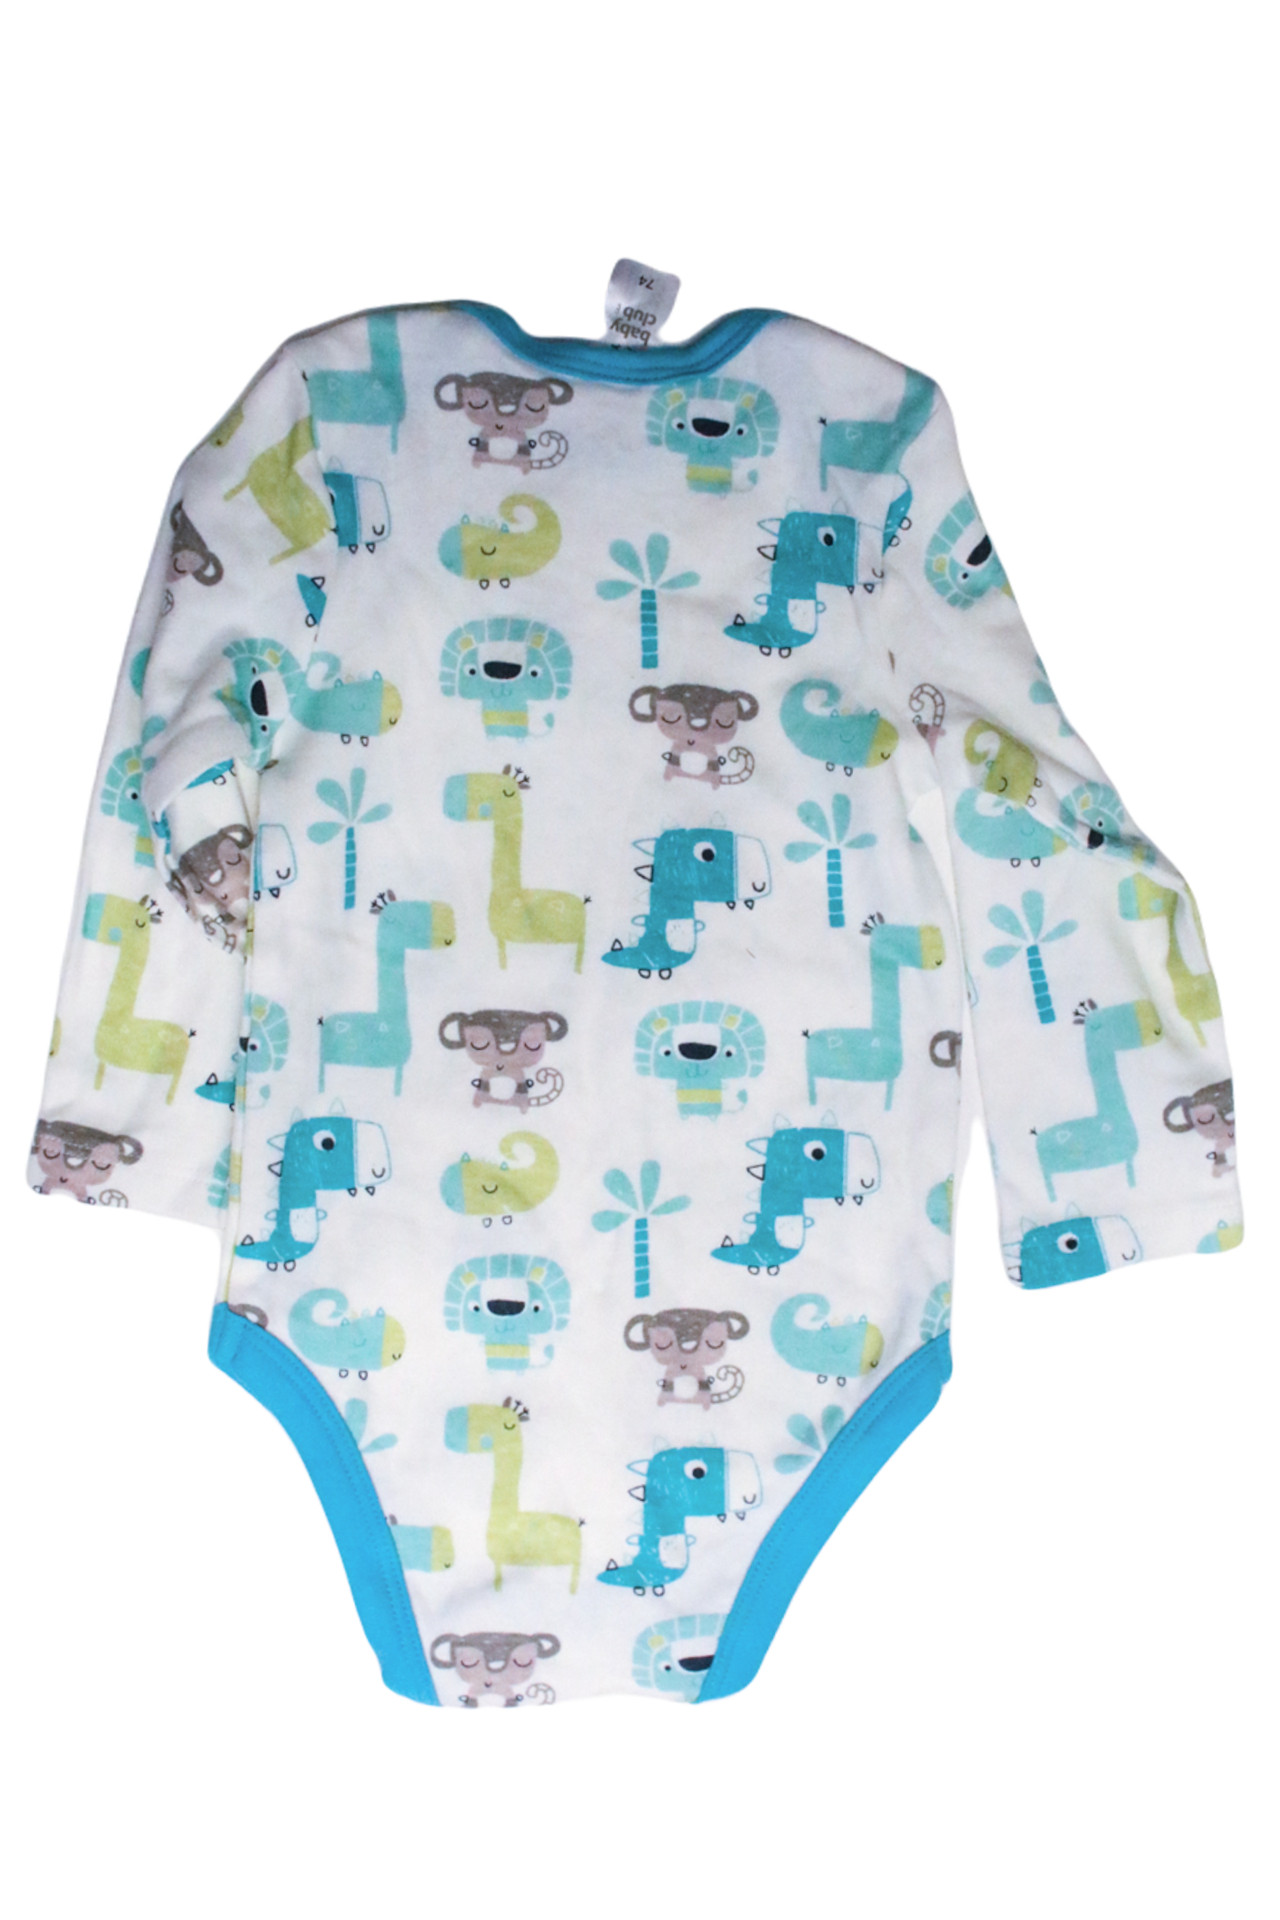 copy of bodysuit 3-6M - 2